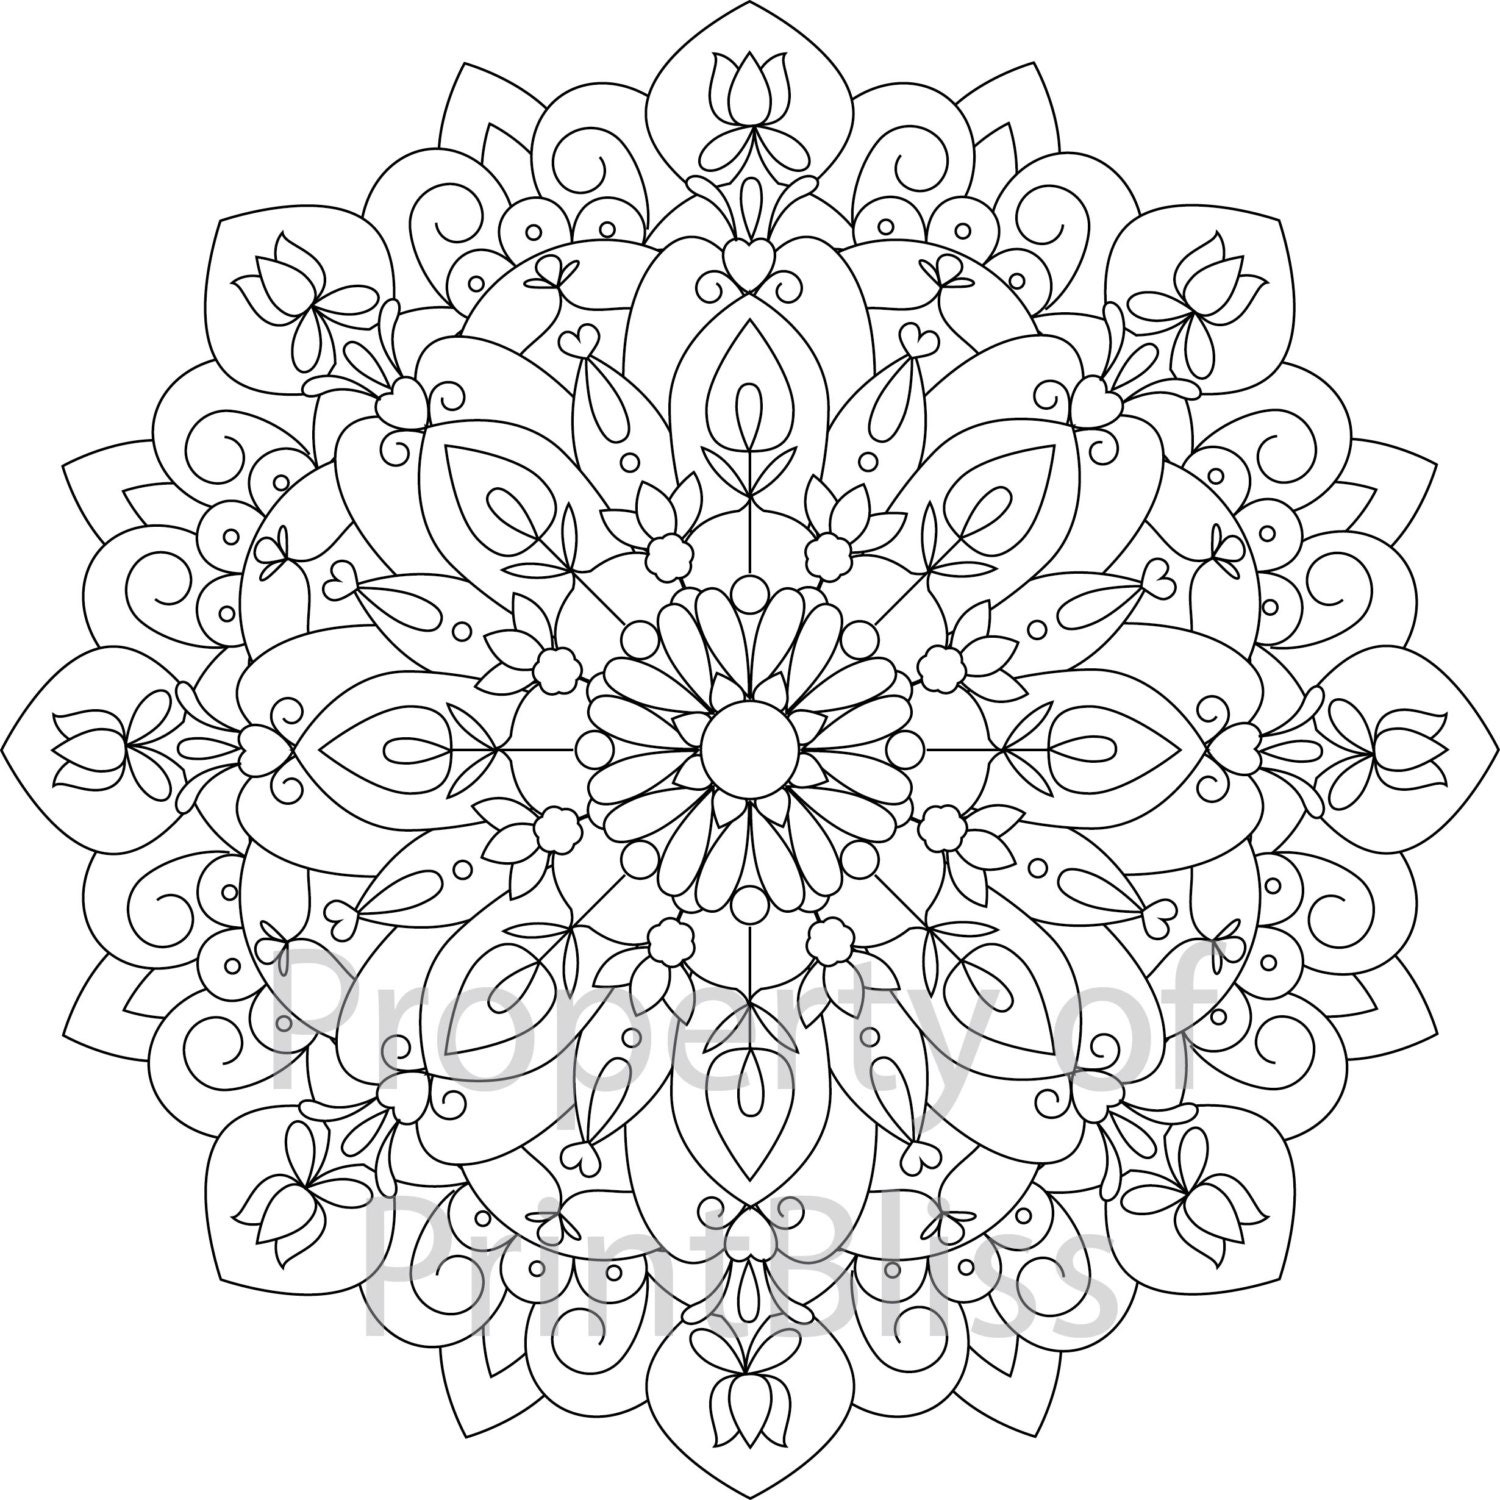 10 flower mandala printable coloring page by printbliss on etsy. Black Bedroom Furniture Sets. Home Design Ideas